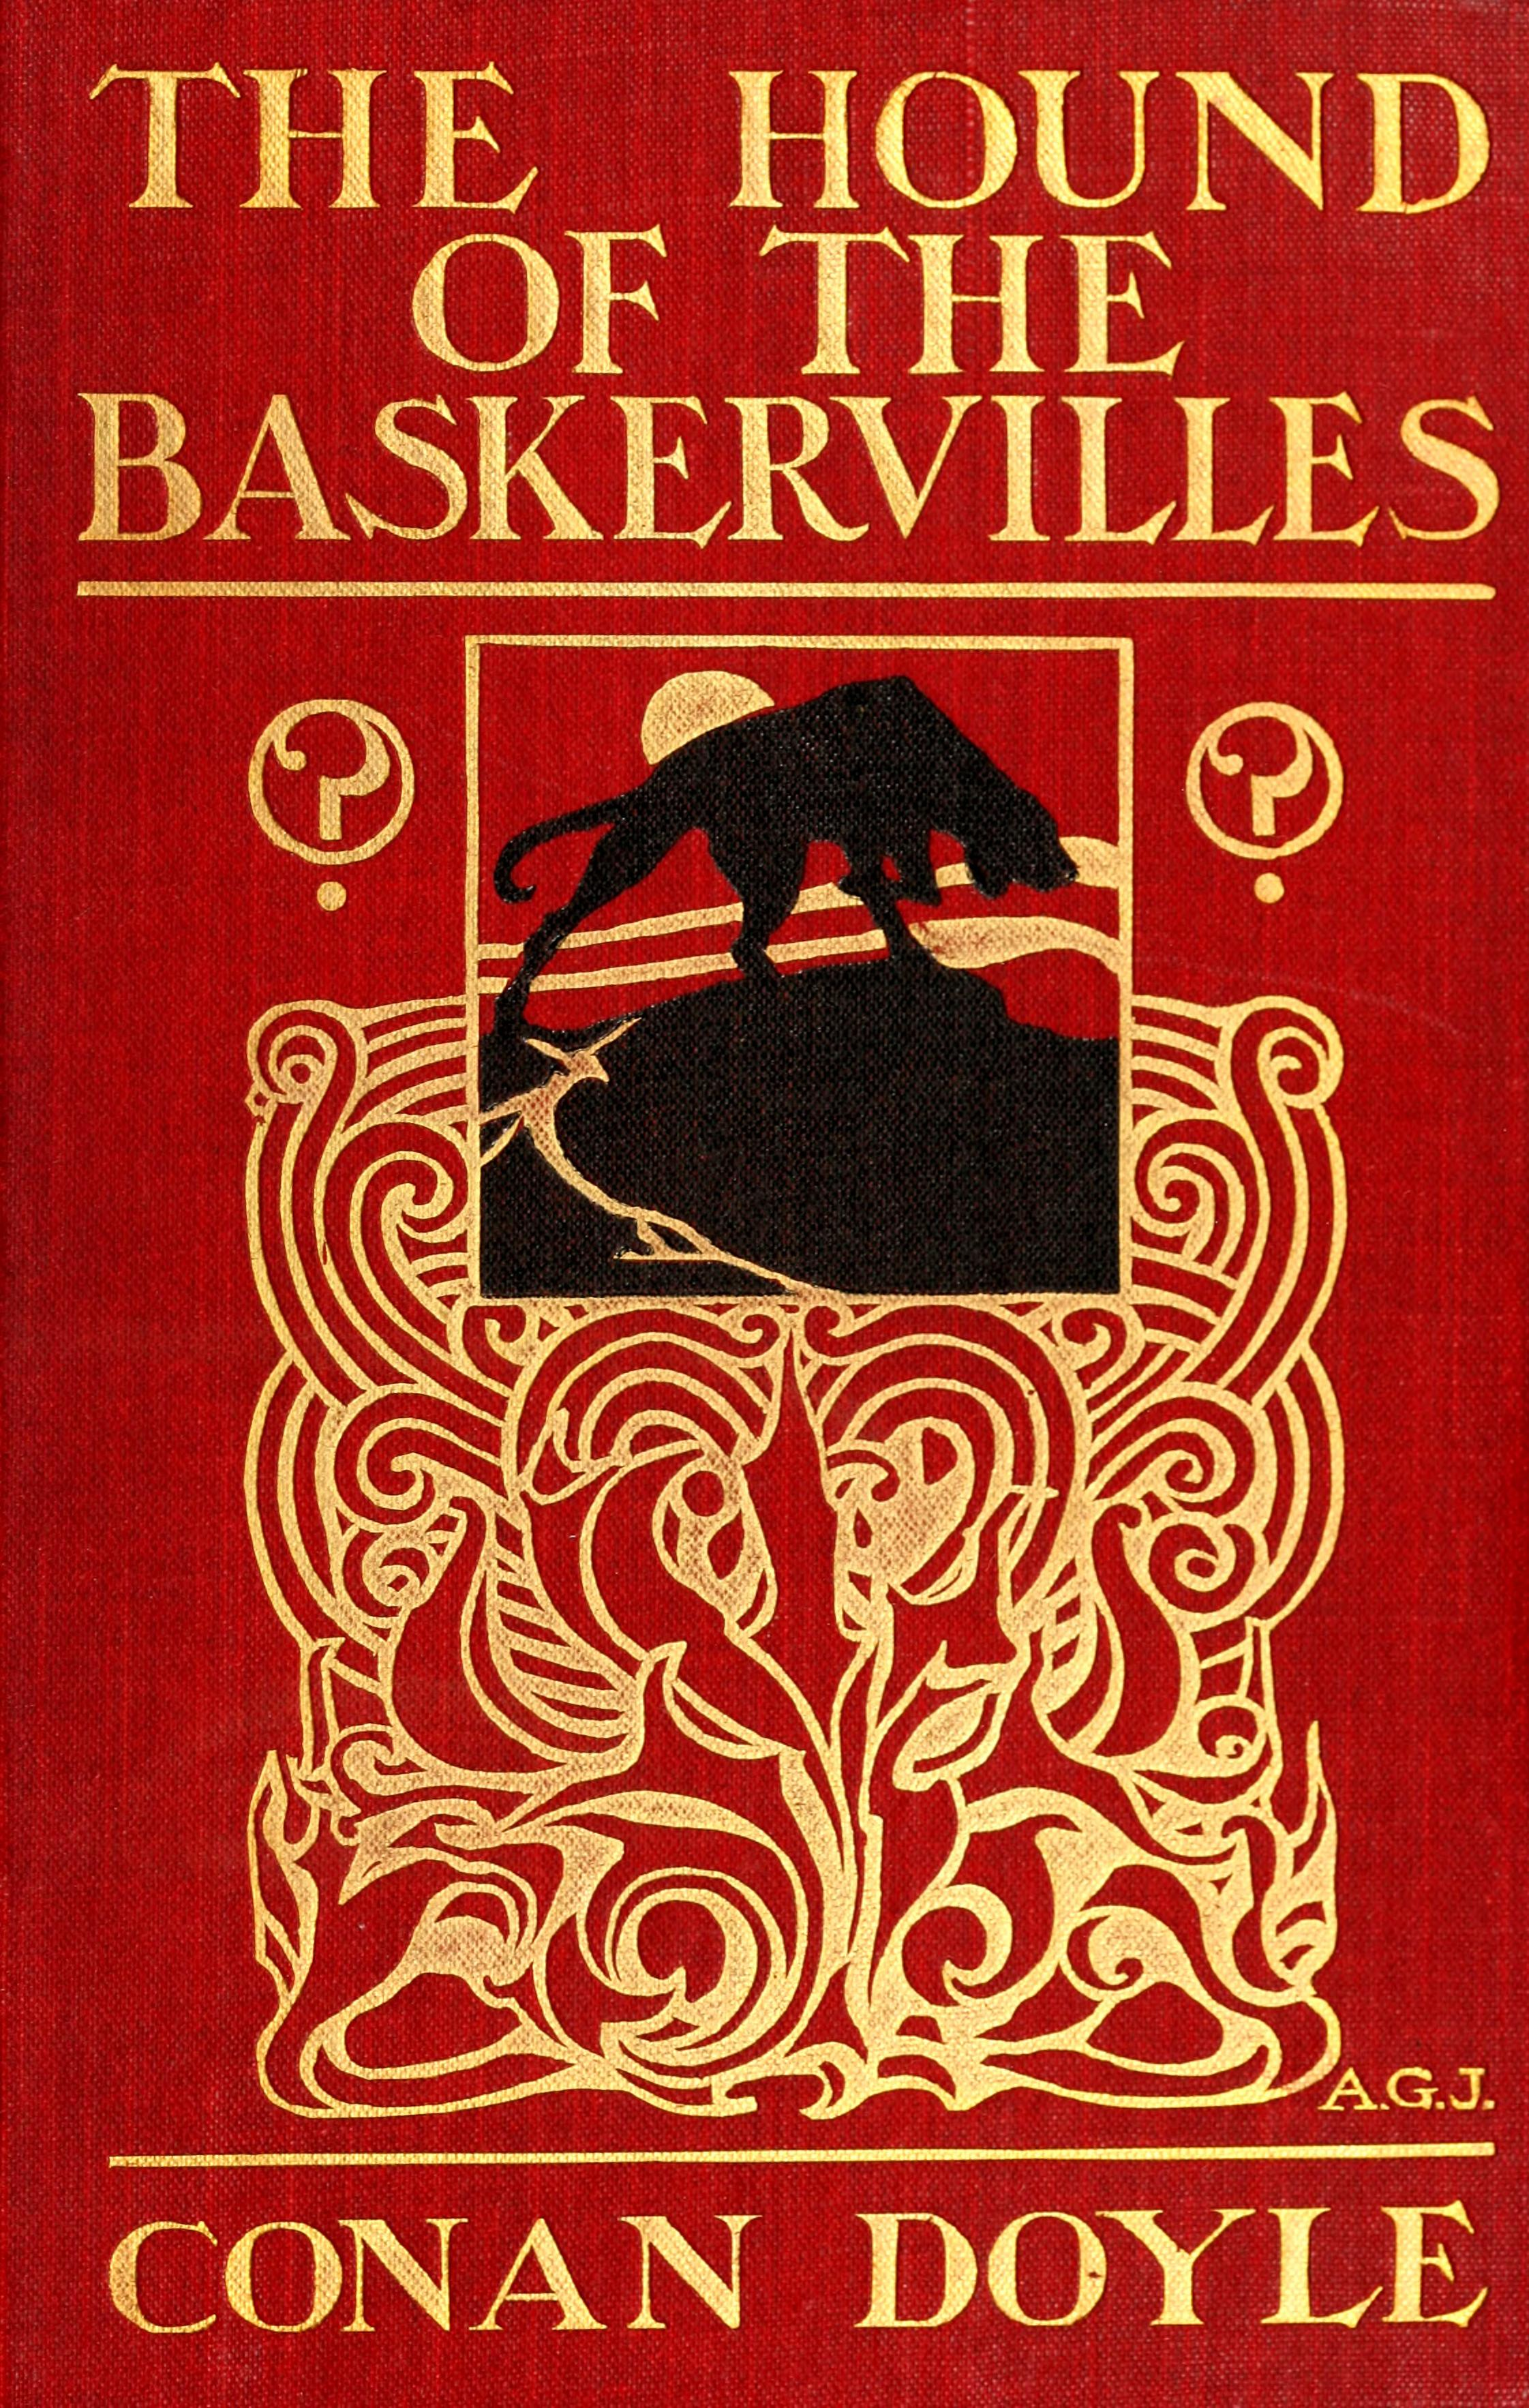 arthur conan doyle hound baskervilles essay Hound of the baskervilles arthur conan doyle contents suggested essay the supernatural plays a major role in the hound of the baskervilles doyle uses it on.